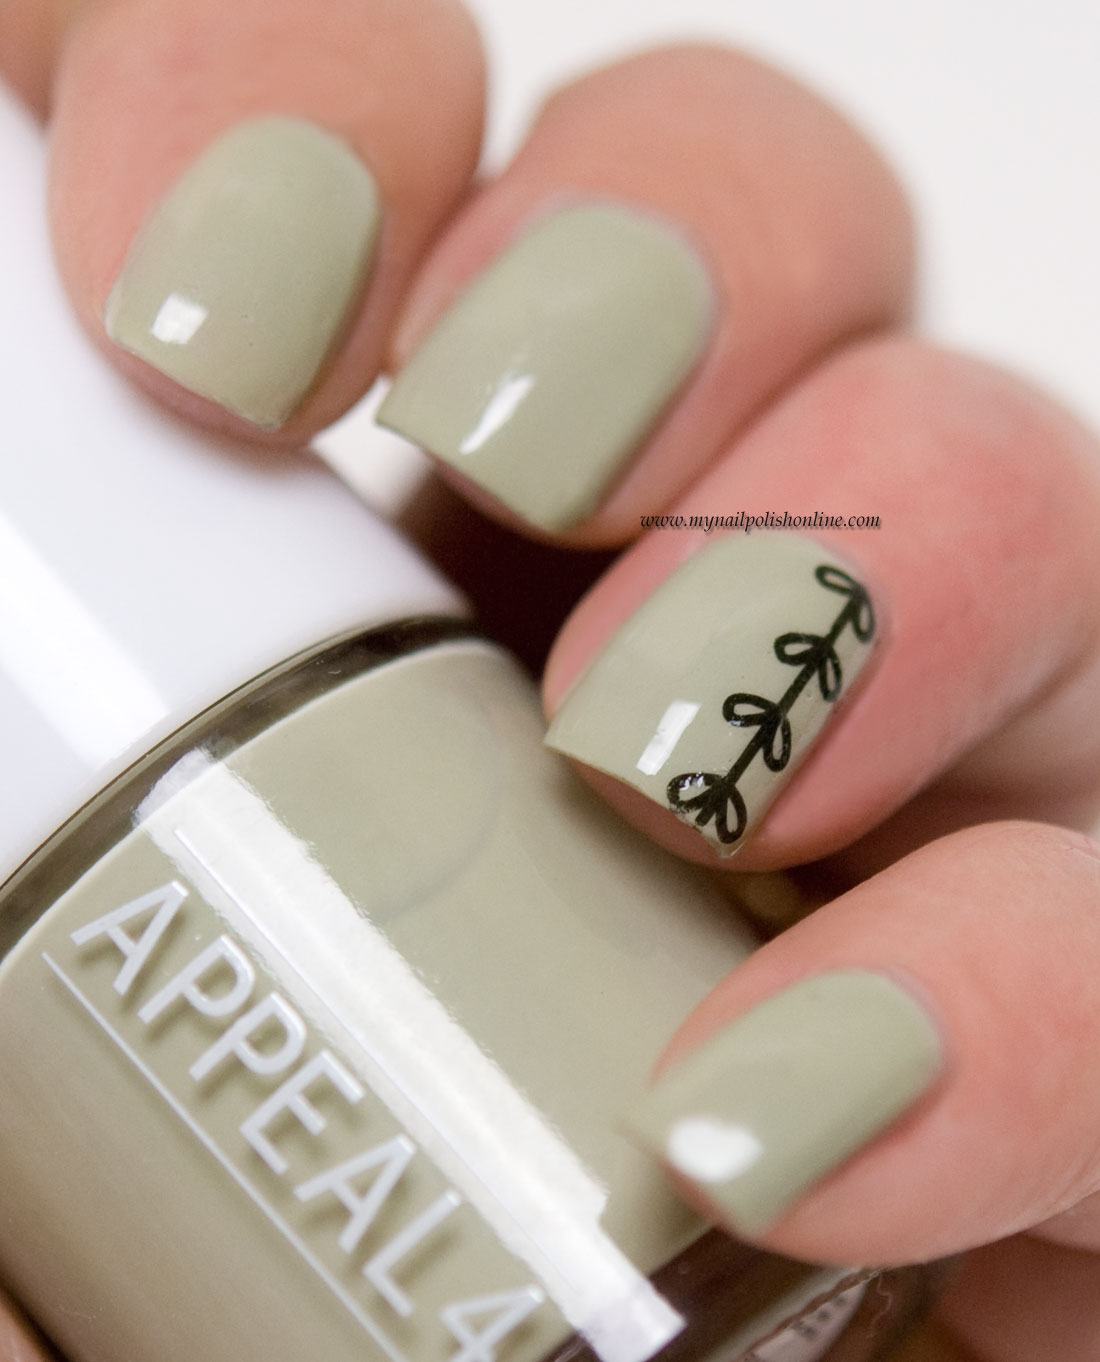 Subtle Nail Art with Hand Tattoos - My Nail Polish Online